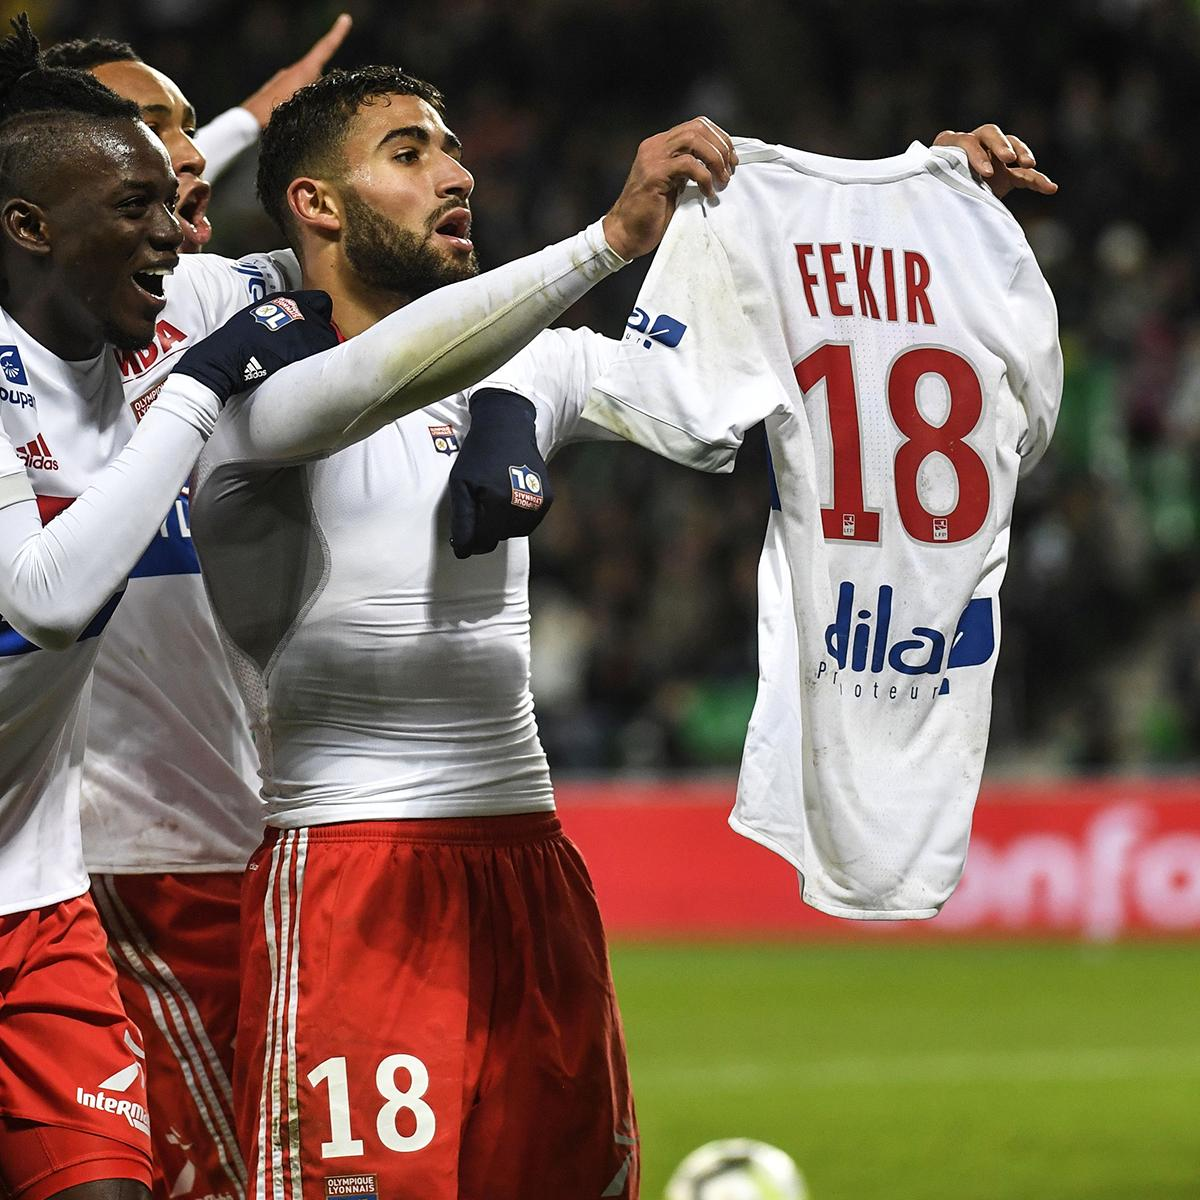 When @NabilFekir caused a pitch invasion by holding up his shirt against arch rivals Saint Etienne… …and Lyon fans returned the favour in the games that followed 👏🔥